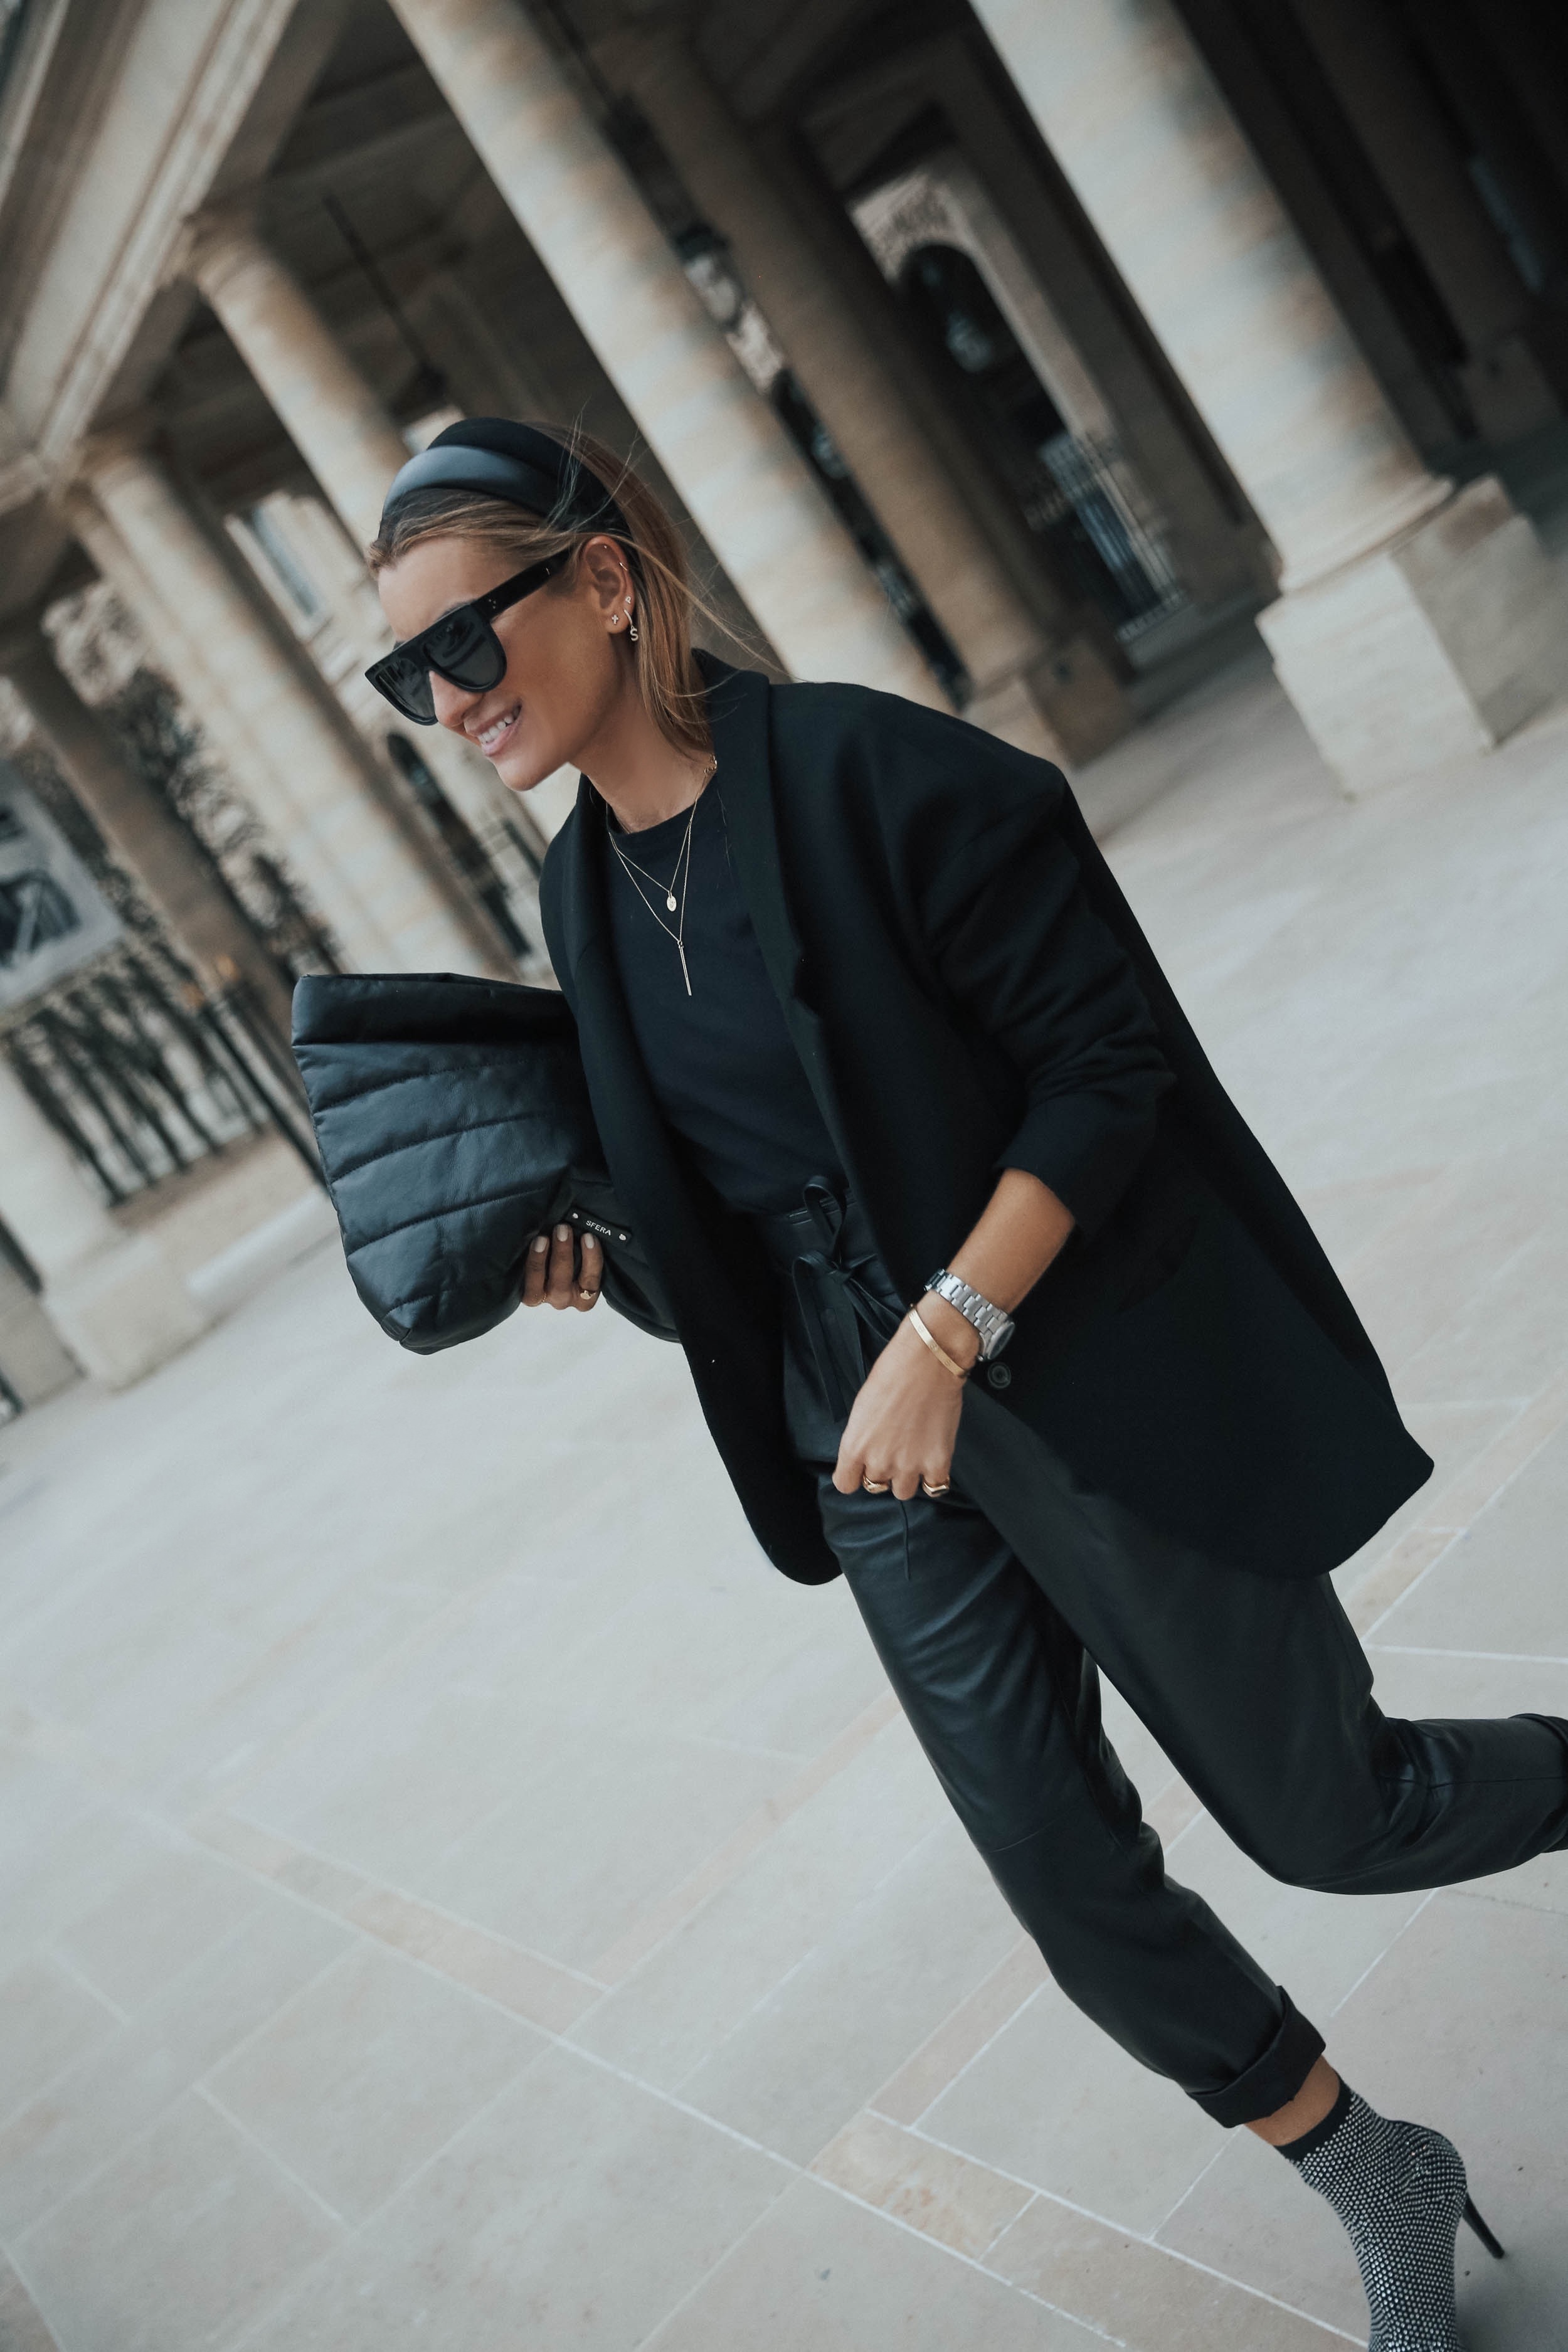 ALL BLACK (& A BLING BLING TOUCH)